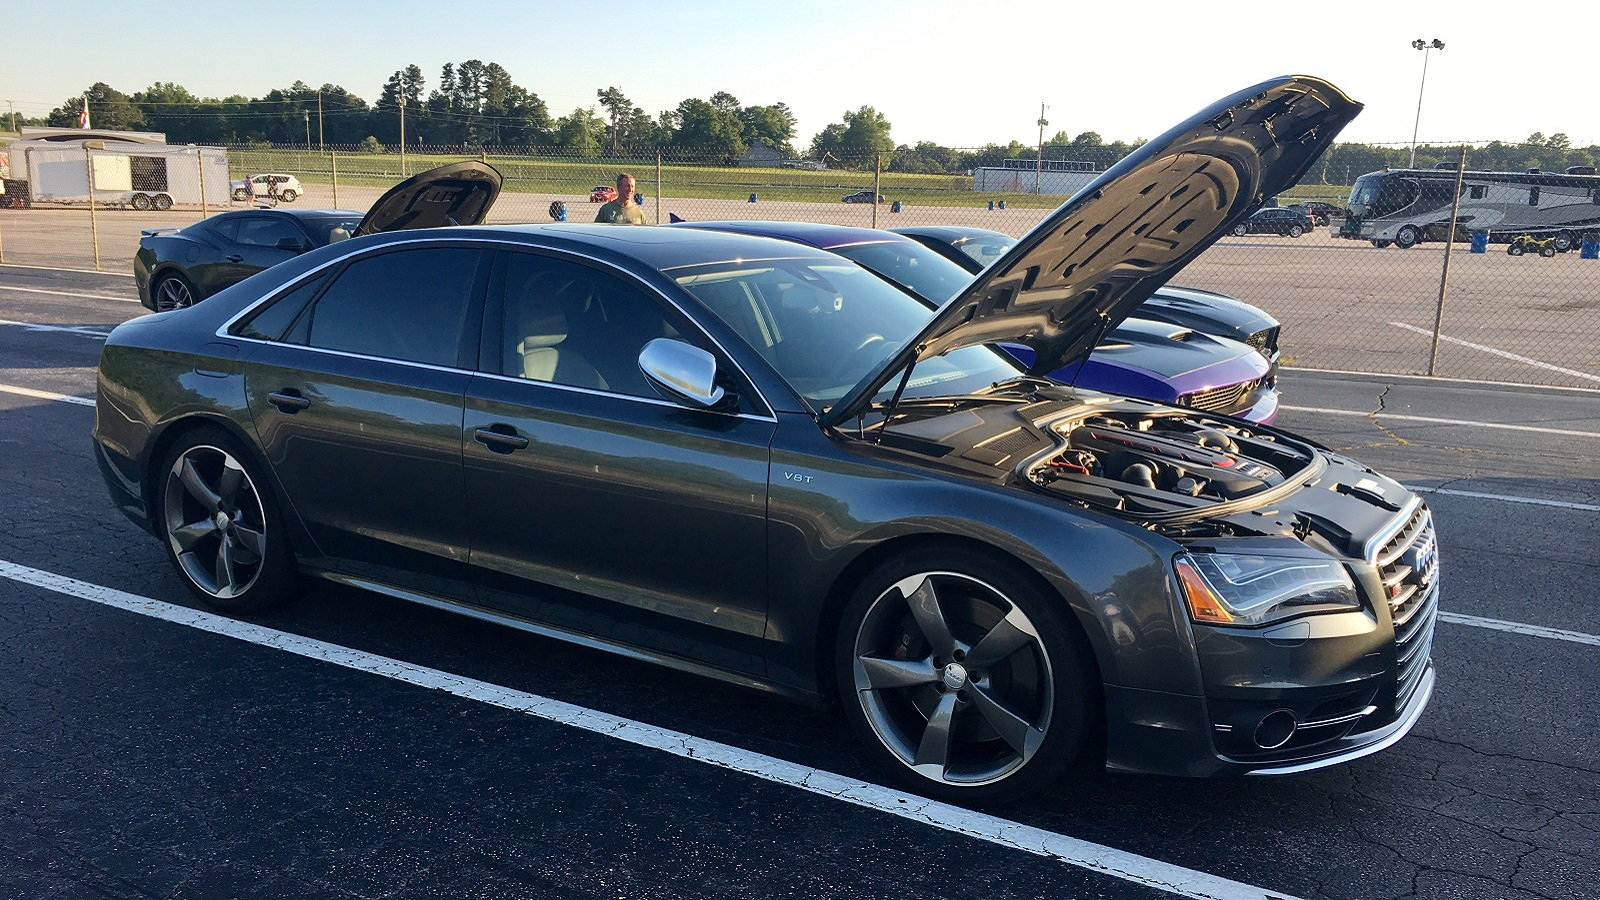 S8 at the Drags